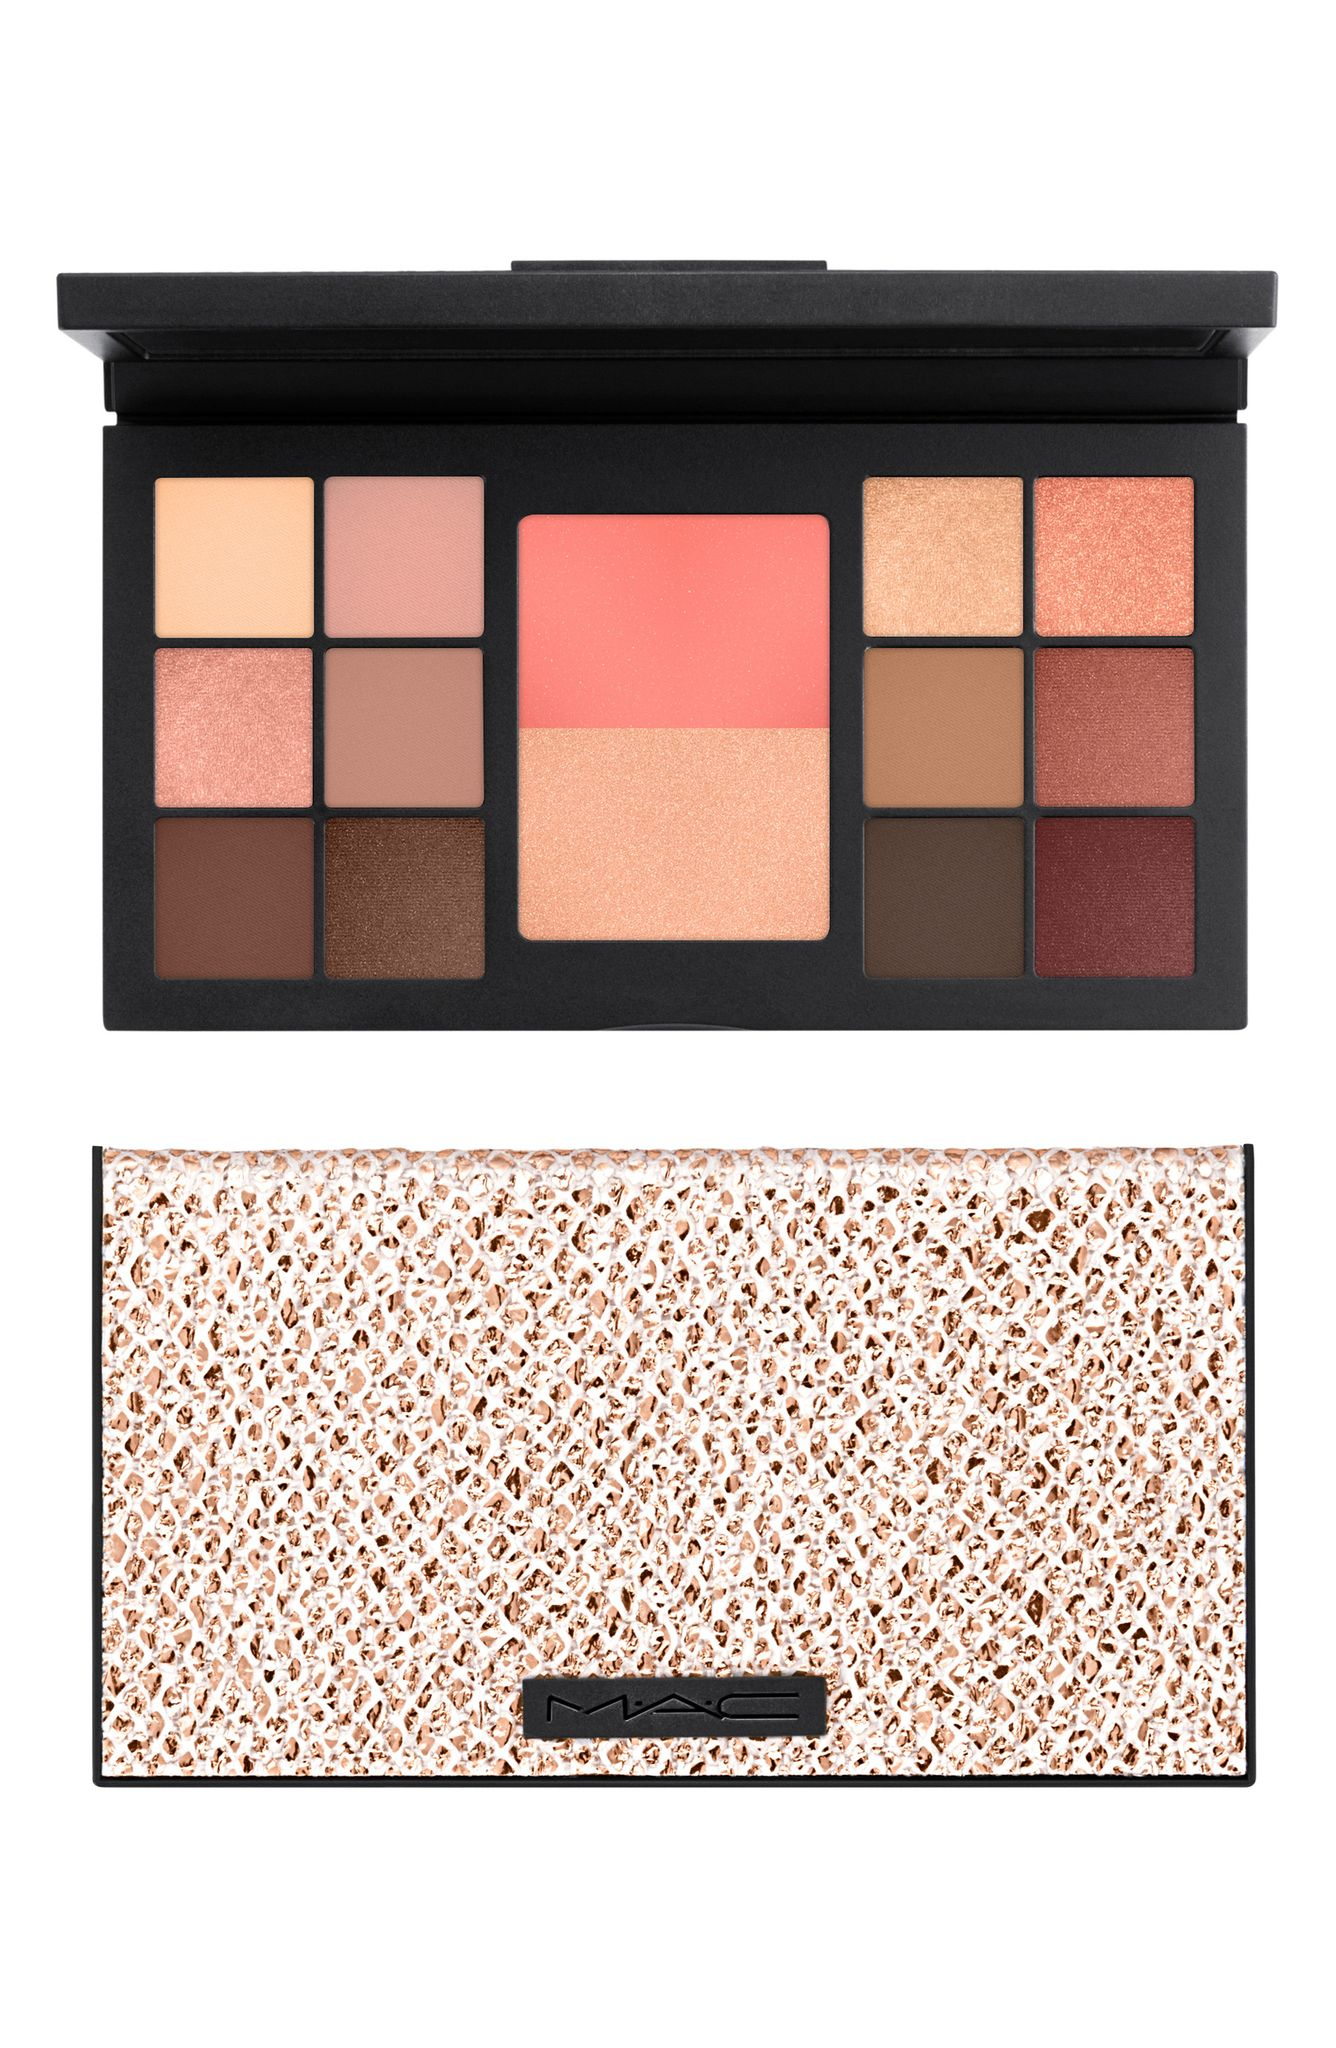 MAC Warm Eye and Face Palette (normally $82): NOW $45 (Image: Nordstrom){ }